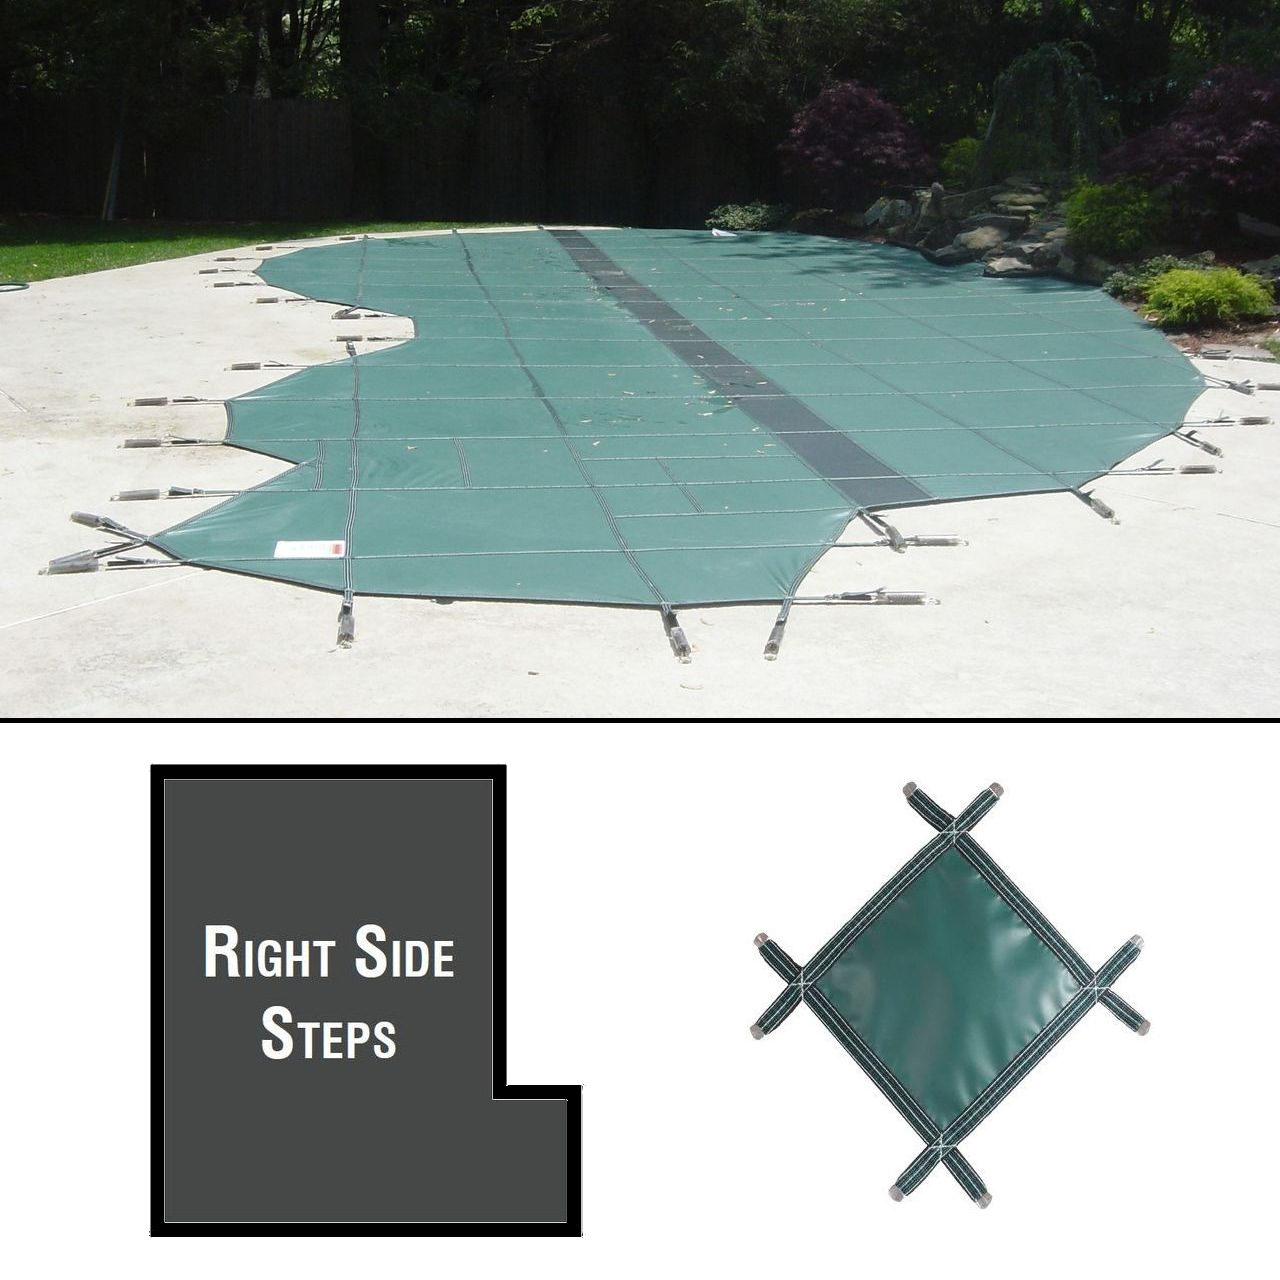 PermaGuard 22'x42' Rectangular Pool Cover With 4'x12' Right Side Steps